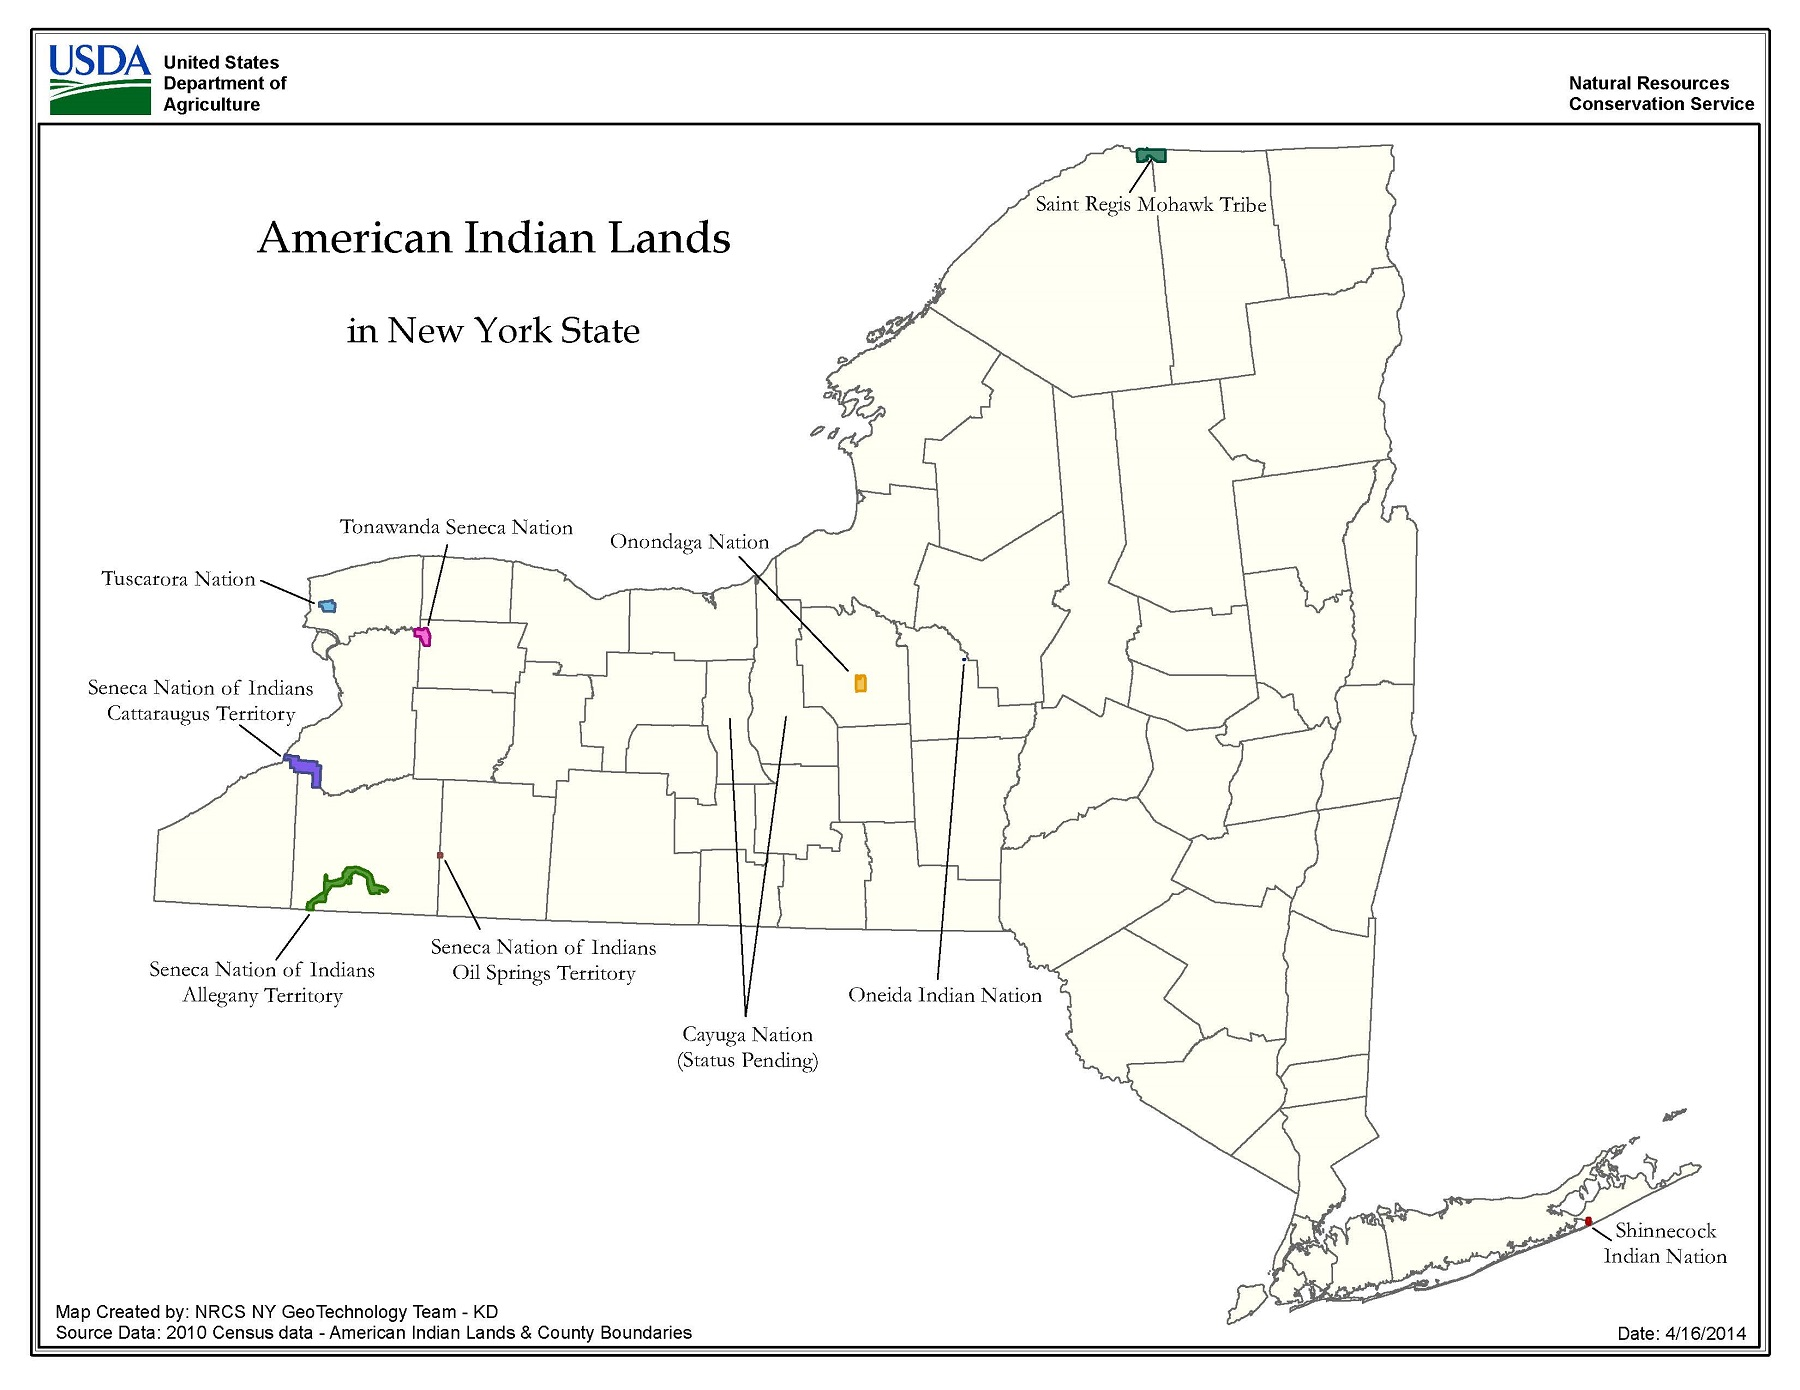 Map of American Indian Lands in New York State